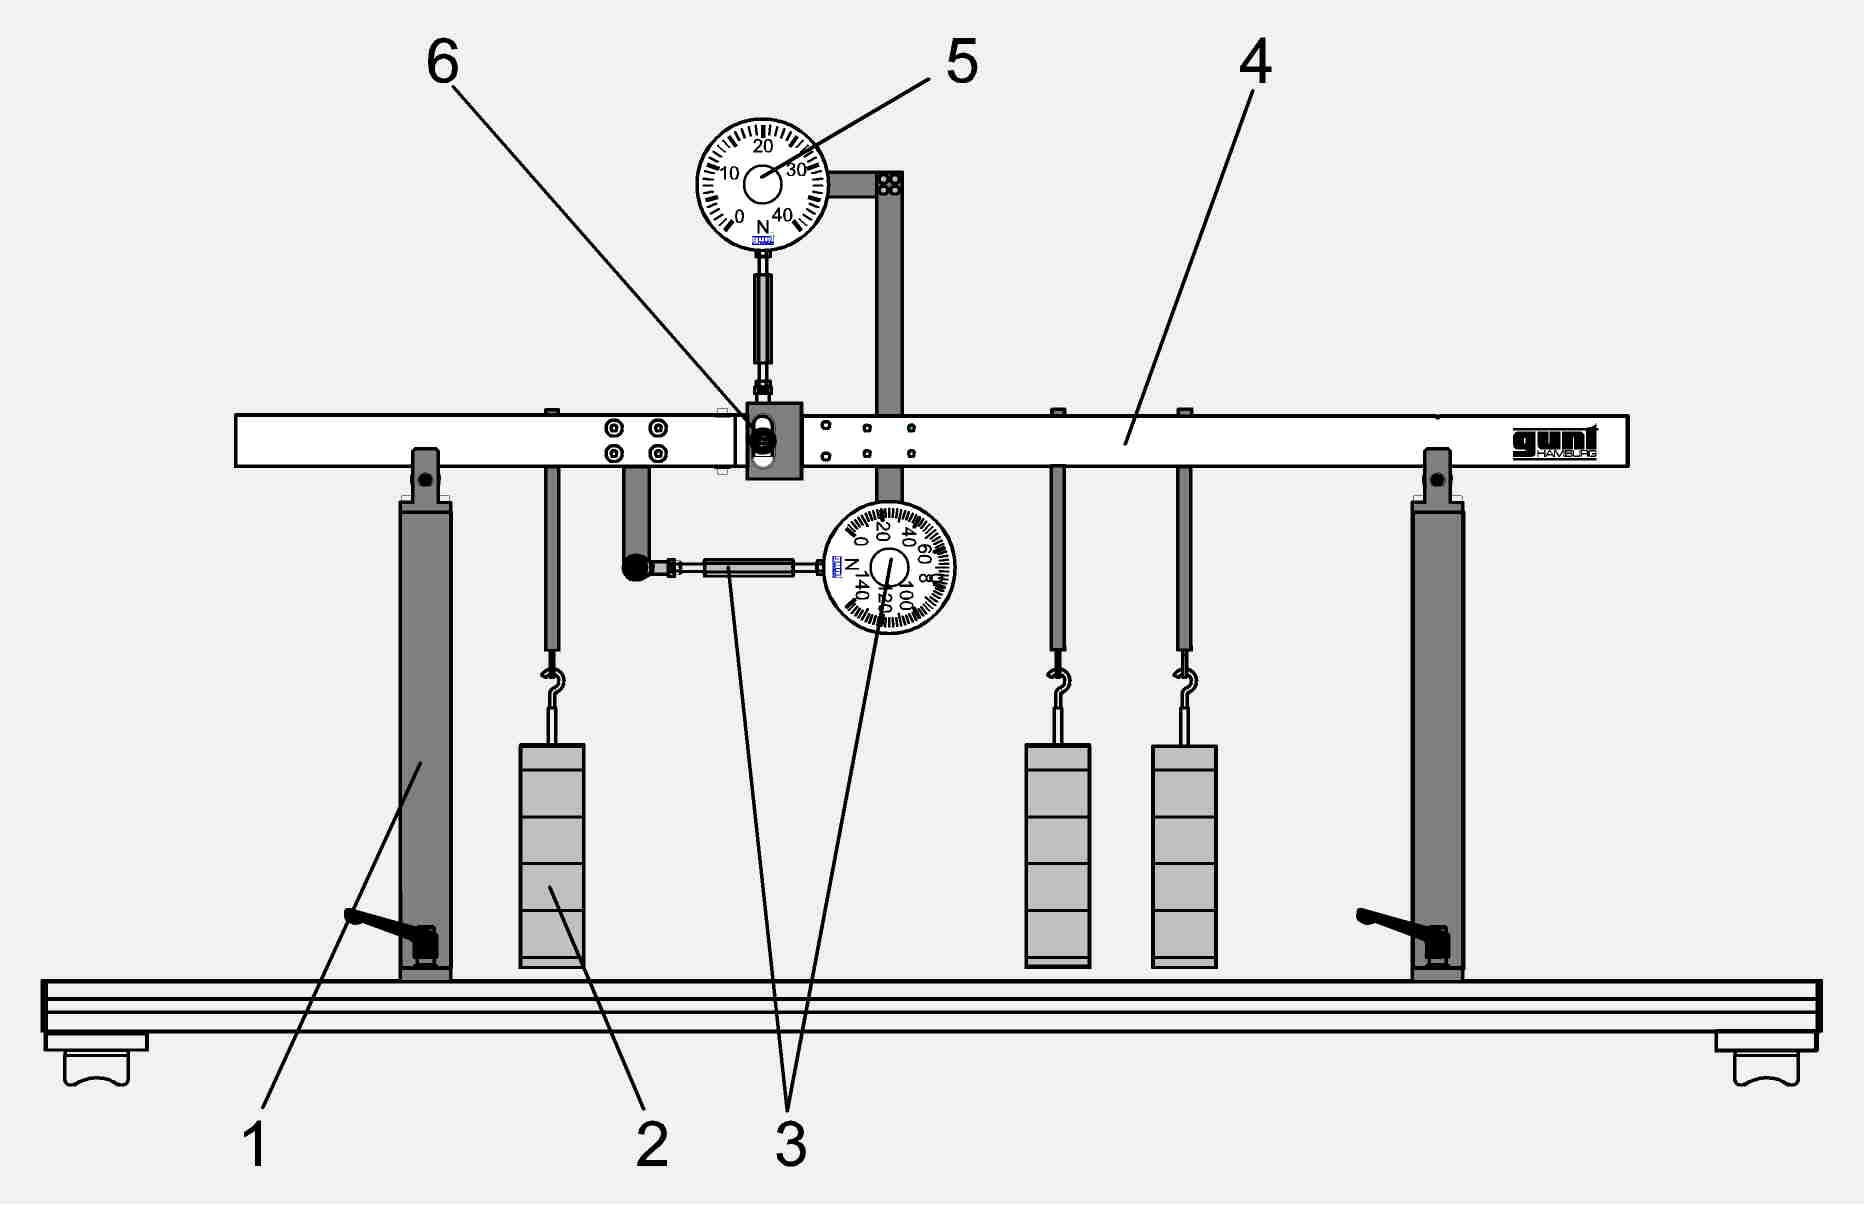 Gunt Equipment For Engineering Education Shear Force And Bending Moment Diagram Shaer Froce 1 Beam Support 2 Weight 3 Gauge With Adjuster Nut To Determine The 4 5 6 Hinge Degrees Of